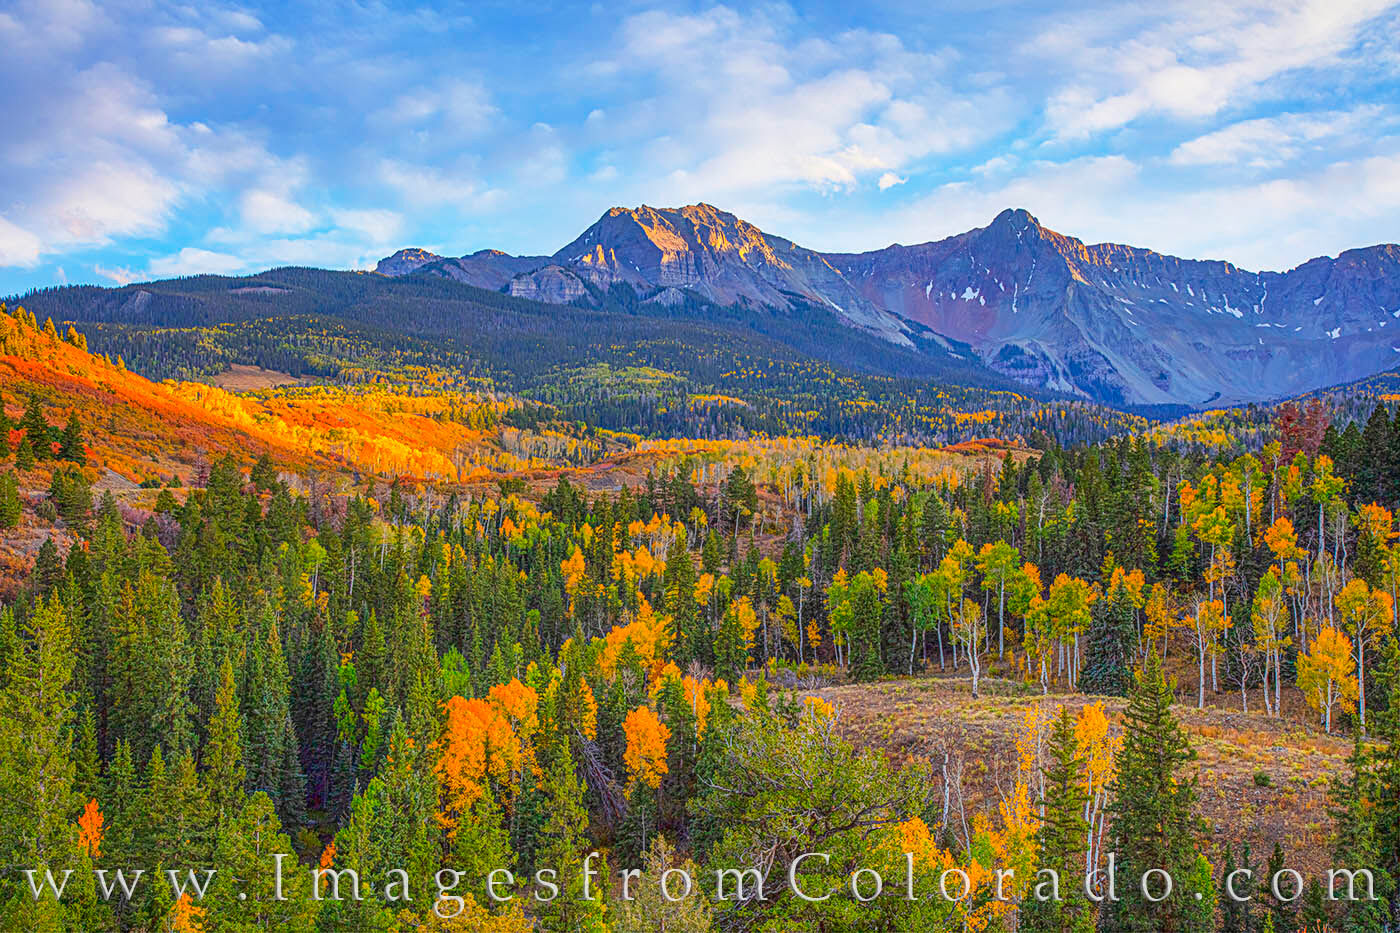 aspen, dallas divide, sneffels, fall, autumn, october, ridgway, CR 9, photo